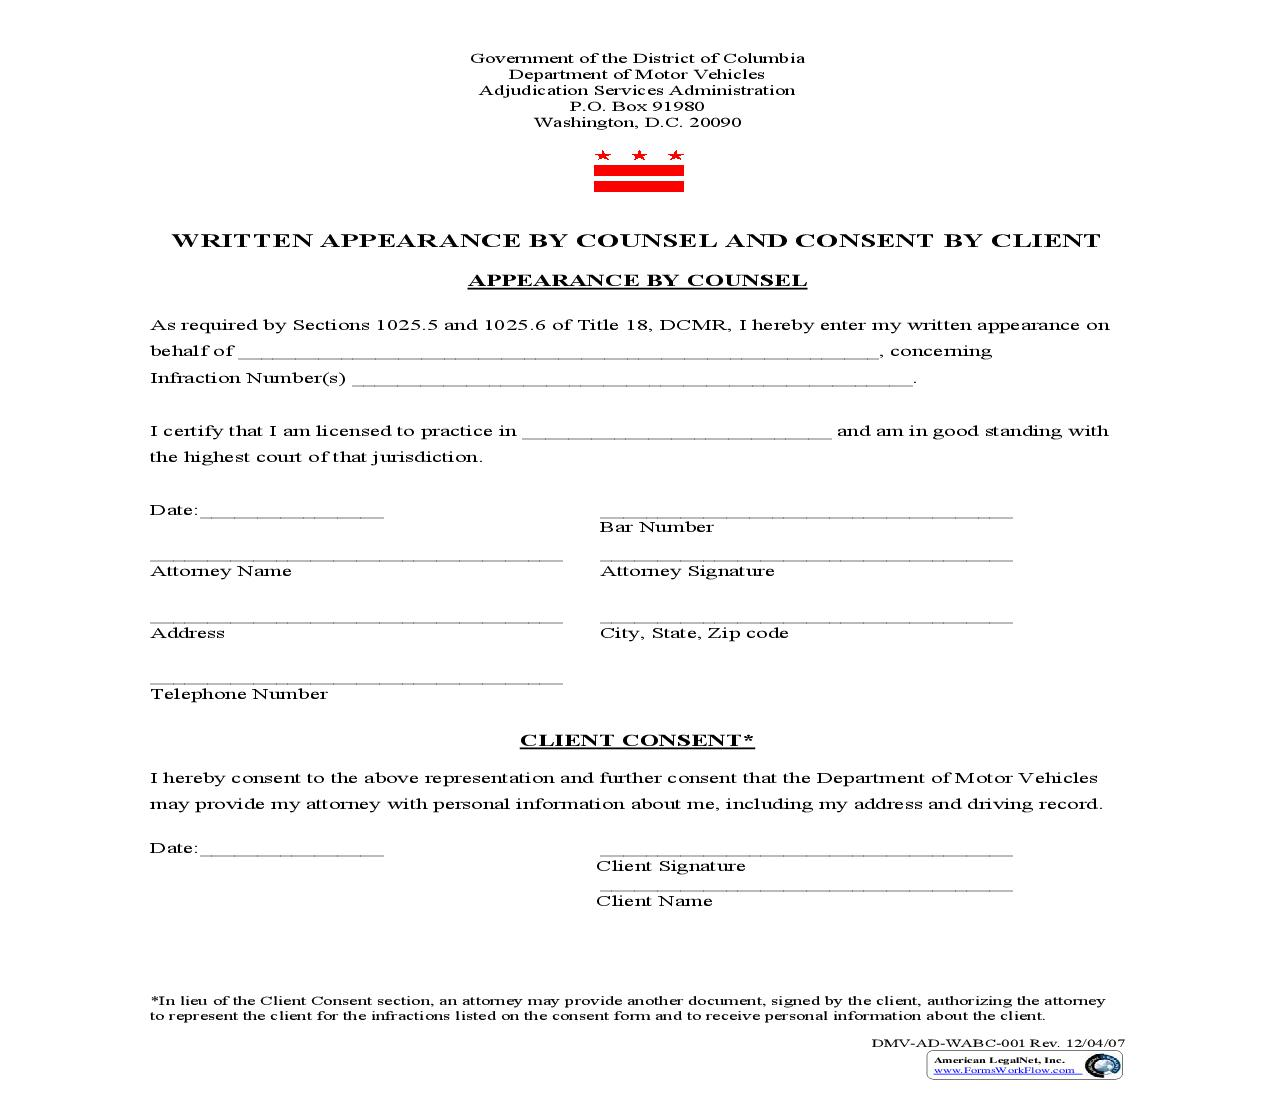 Written Appearance By Counsel And Consent By Client {DMV-AD-WABC-001} | Pdf Fpdf Doc Docx | District Of Columbia